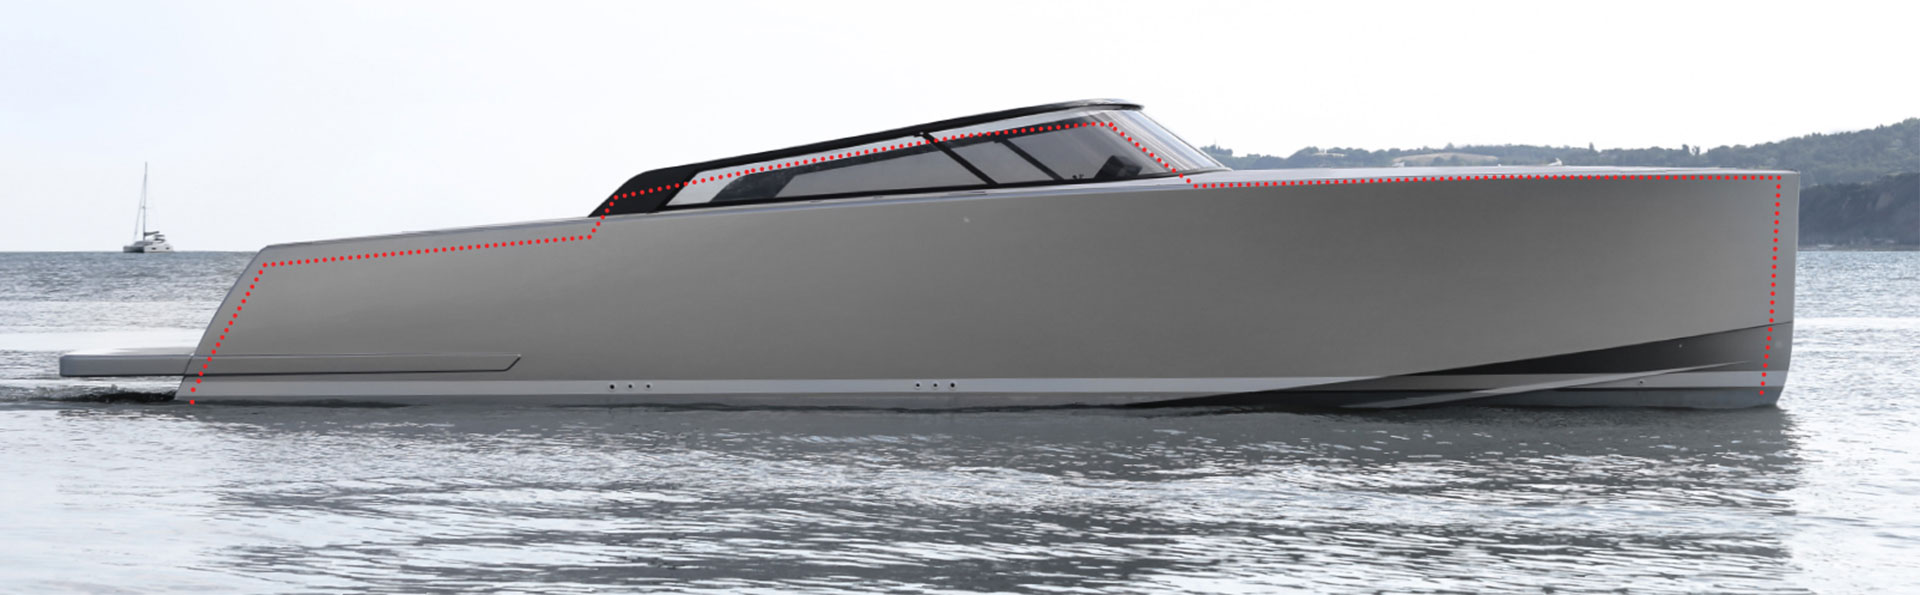 With a retooled hull, the 40.2 becomes 10 in. (25 cm) longer and 10 in. (25 cm) higher, staging a dominance over its predecessor.